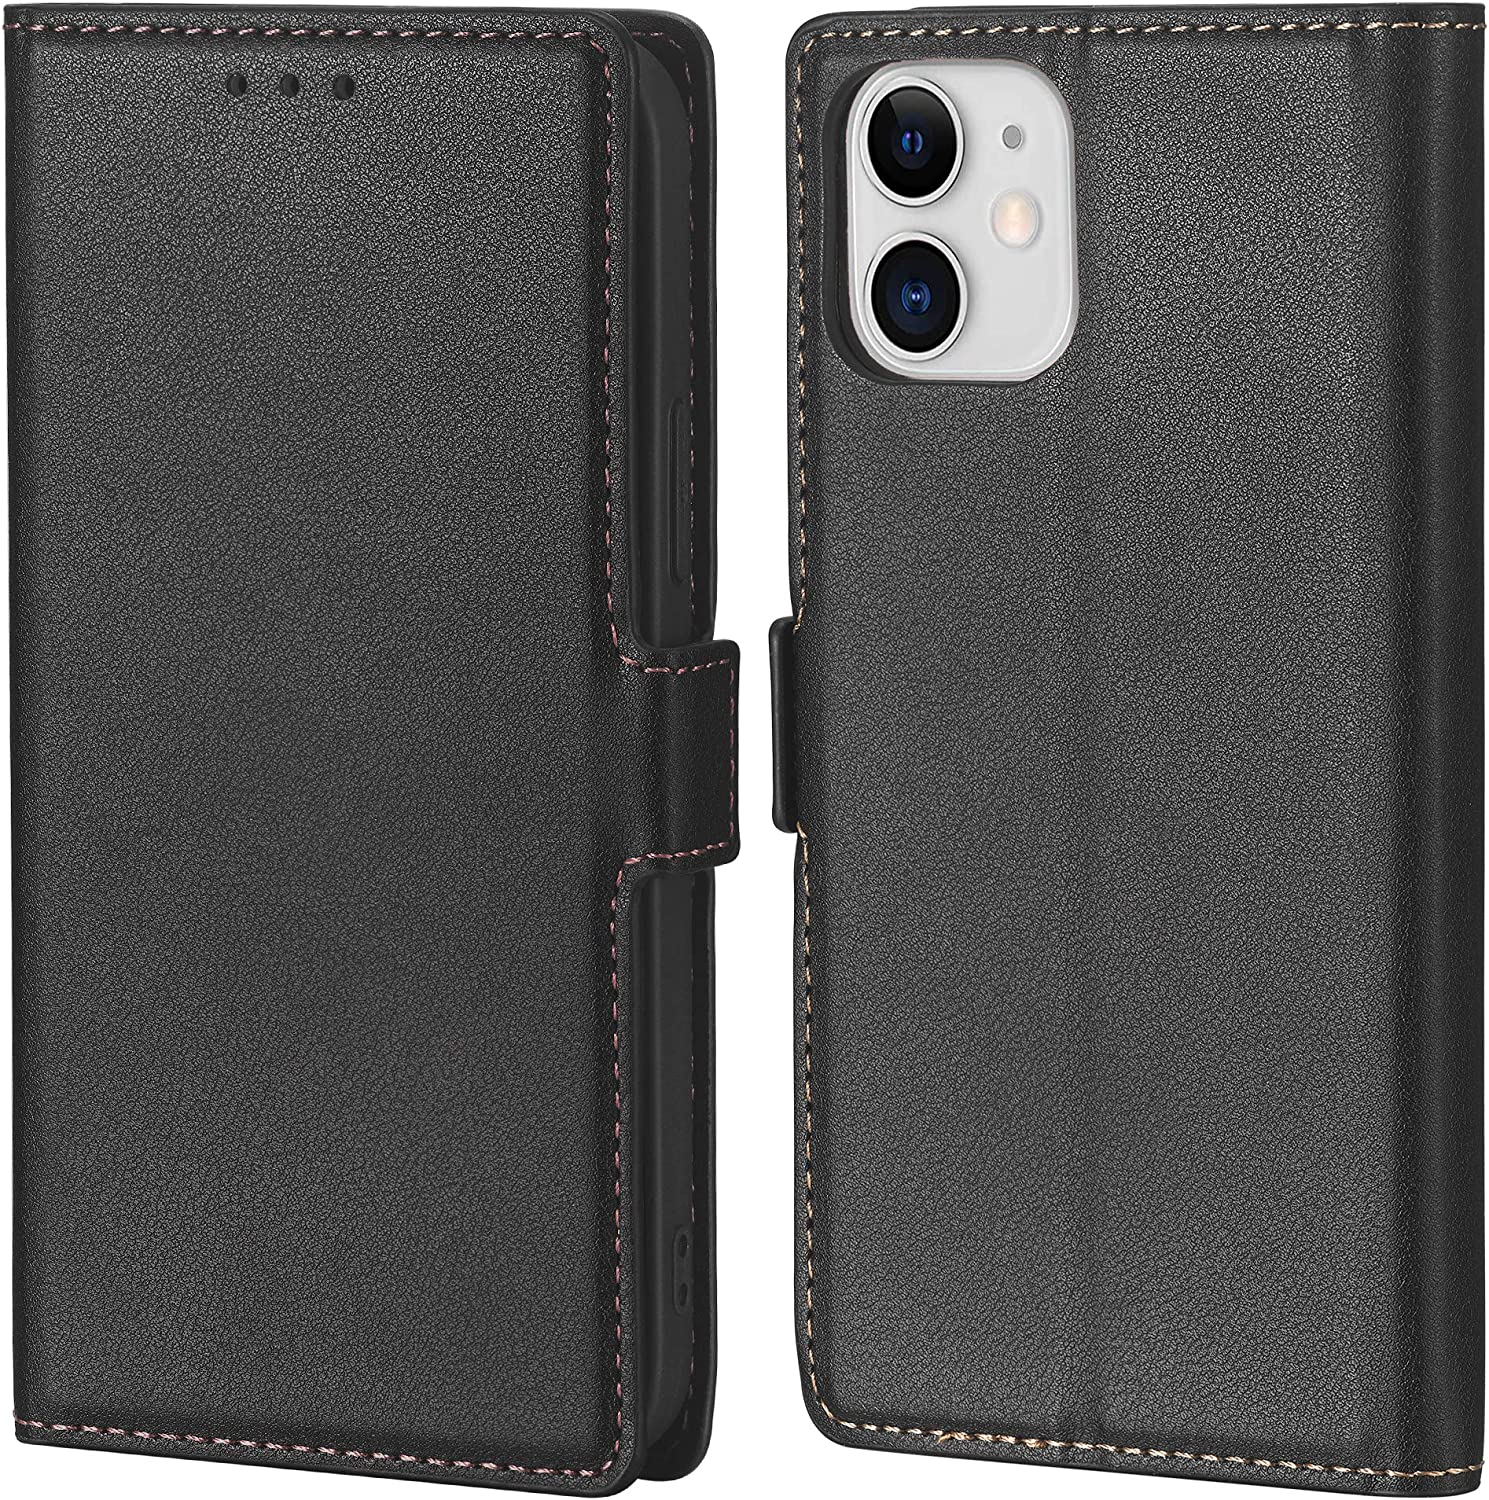 Crosspace Case Compatible with iPhone 12 Mini[5.4 inch,2020 Release],Wallet Case for Men with Card Holder,Premium Ultra Slim PU Leather Flip Cover Cases Professional & Kickstand-Black